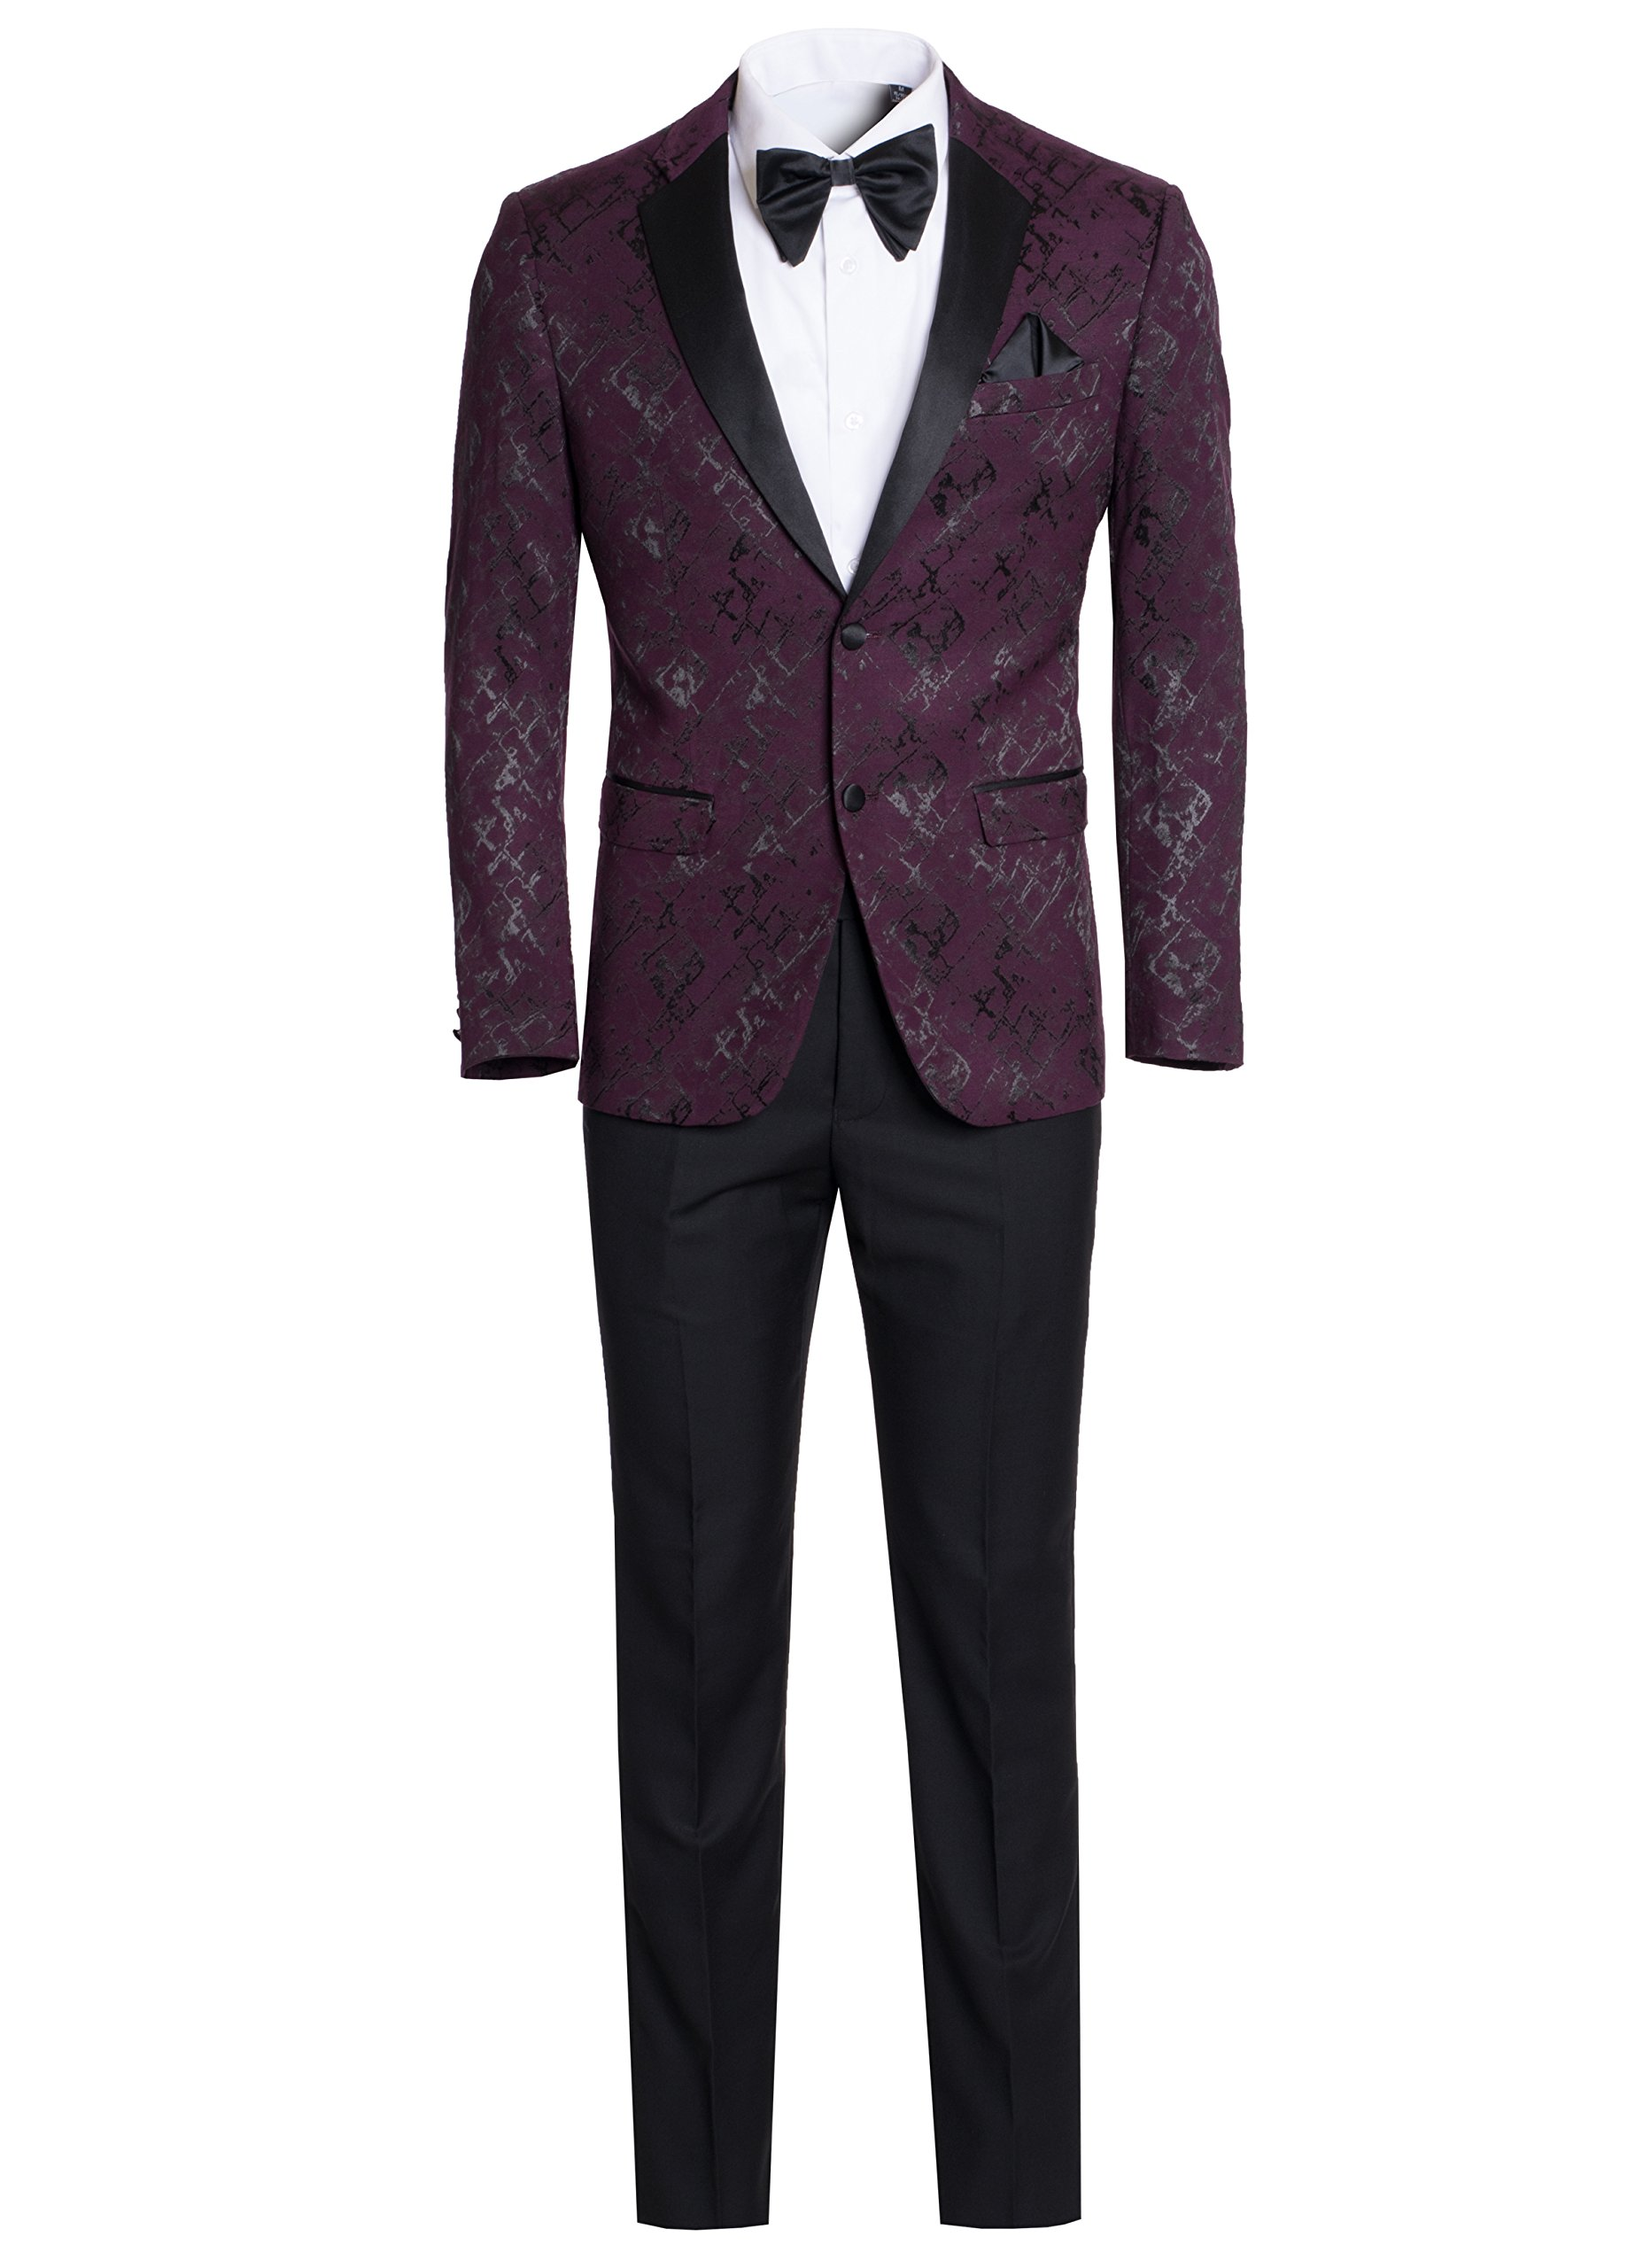 Men's Premium Ultra Slim Fit Patterned Two Piece Two Buttons Tuxedos-Many Colors (Burgundy/Maroon With Black, 40 Short)